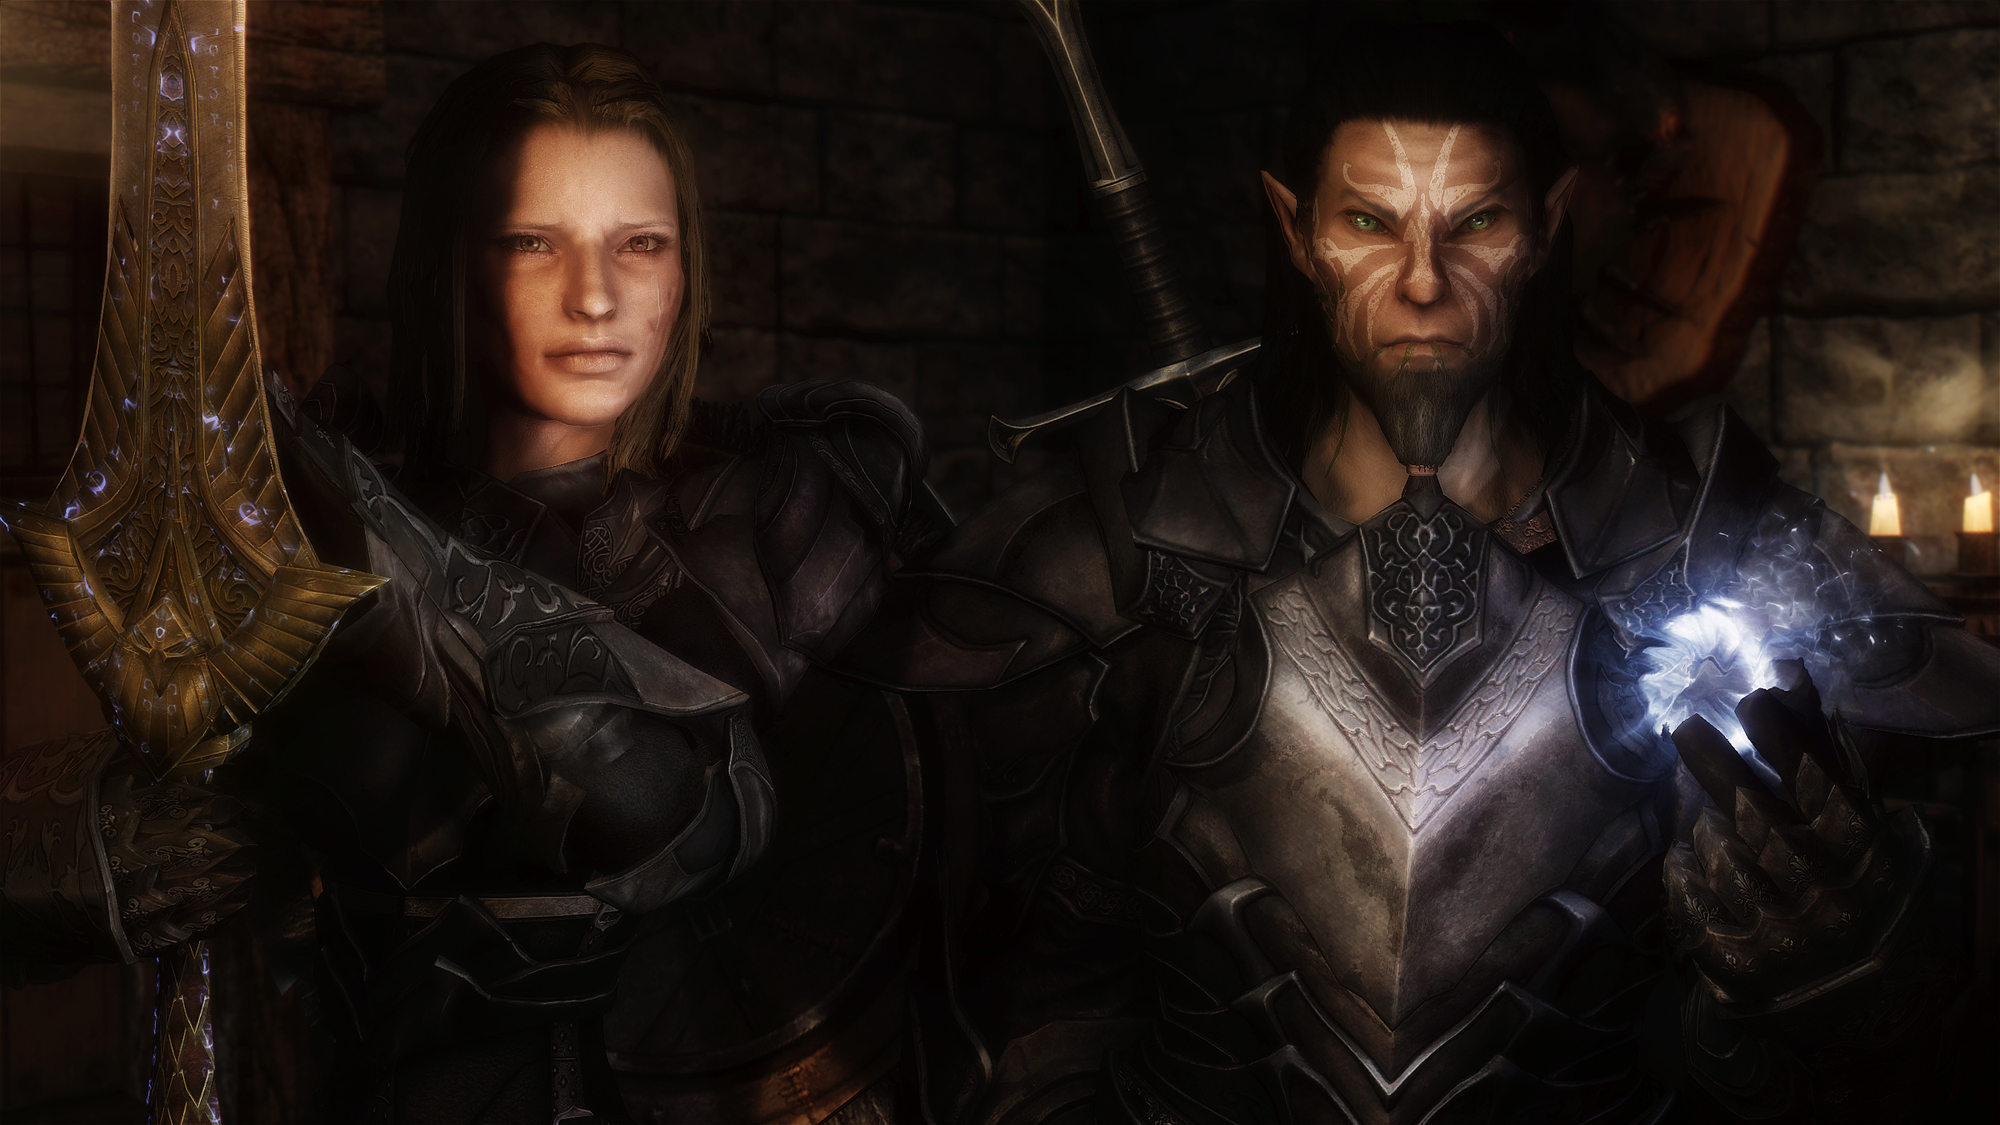 Jordis and Wilvarin